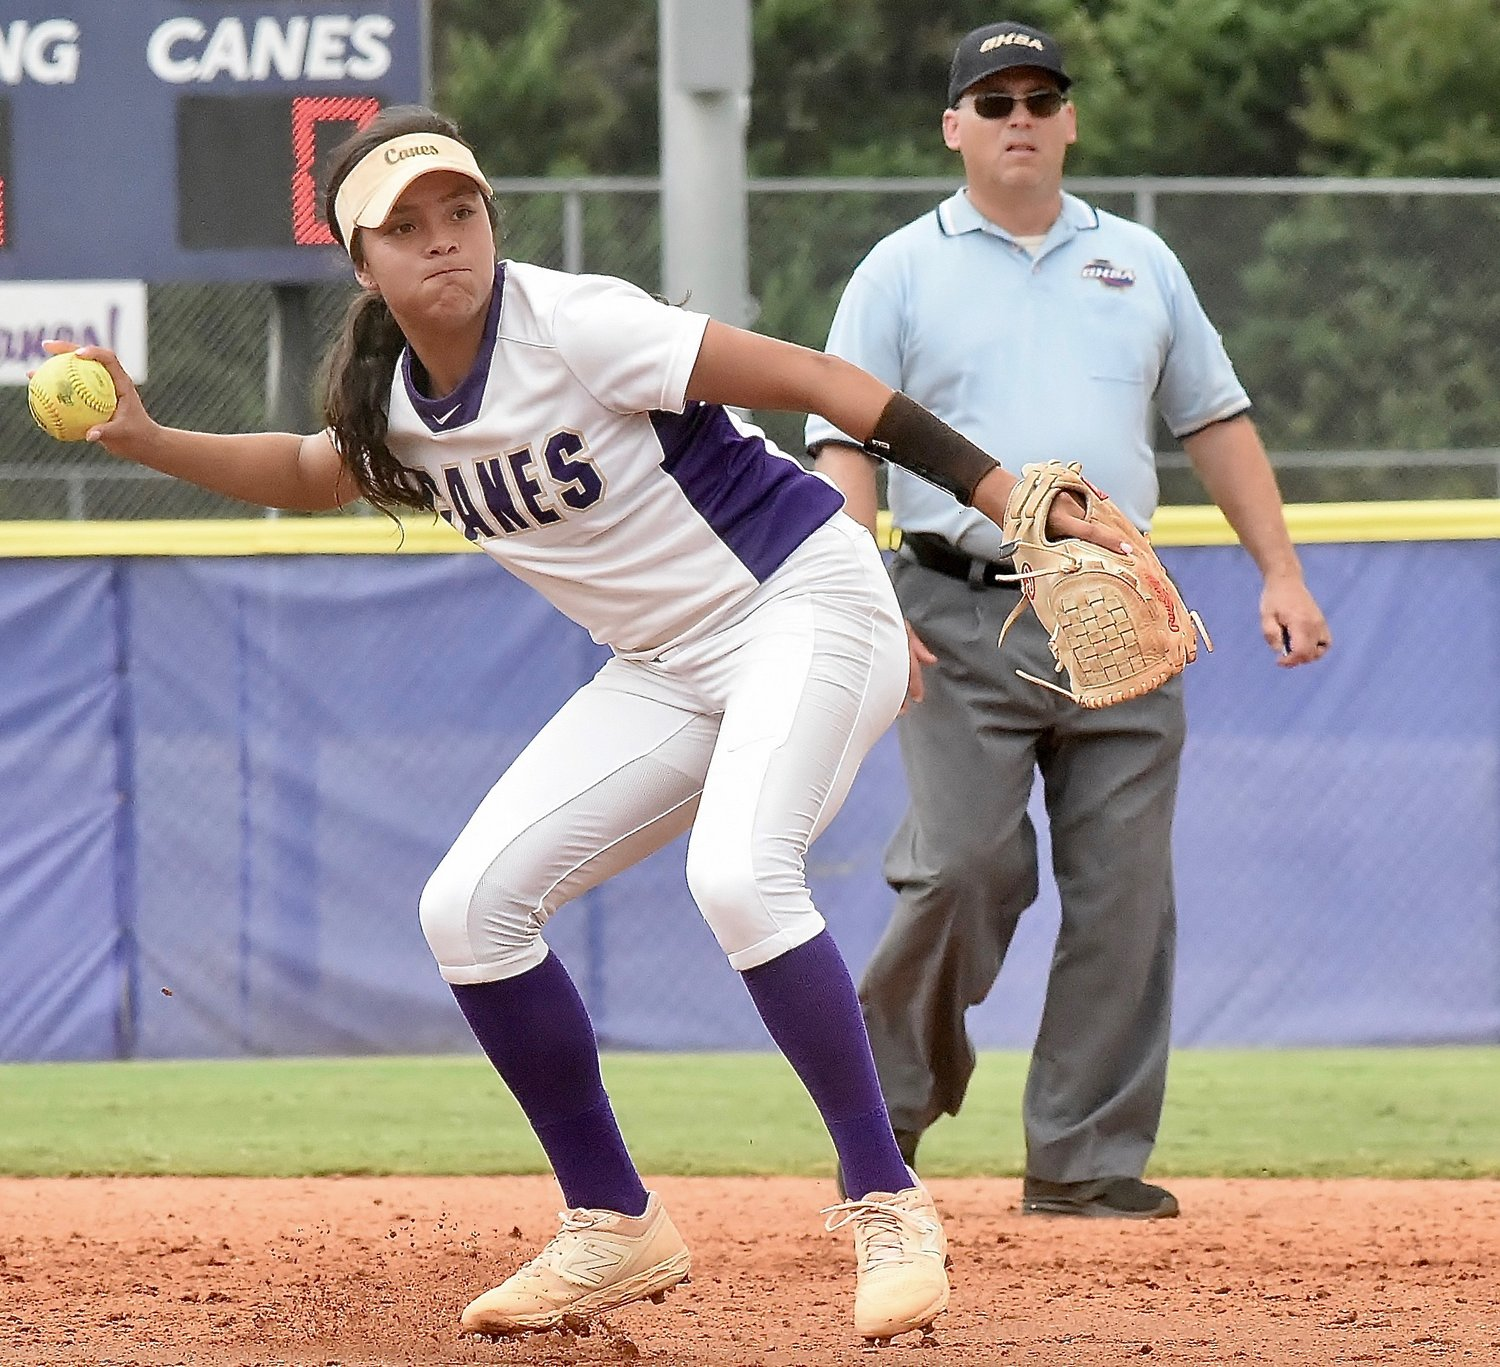 After barehanding a grounder hit to her, Cartersville senior shortstop Cio Seigler throws to first base to record the out during a game against LaGrange Saturday at Cartersville Baseball Complex.